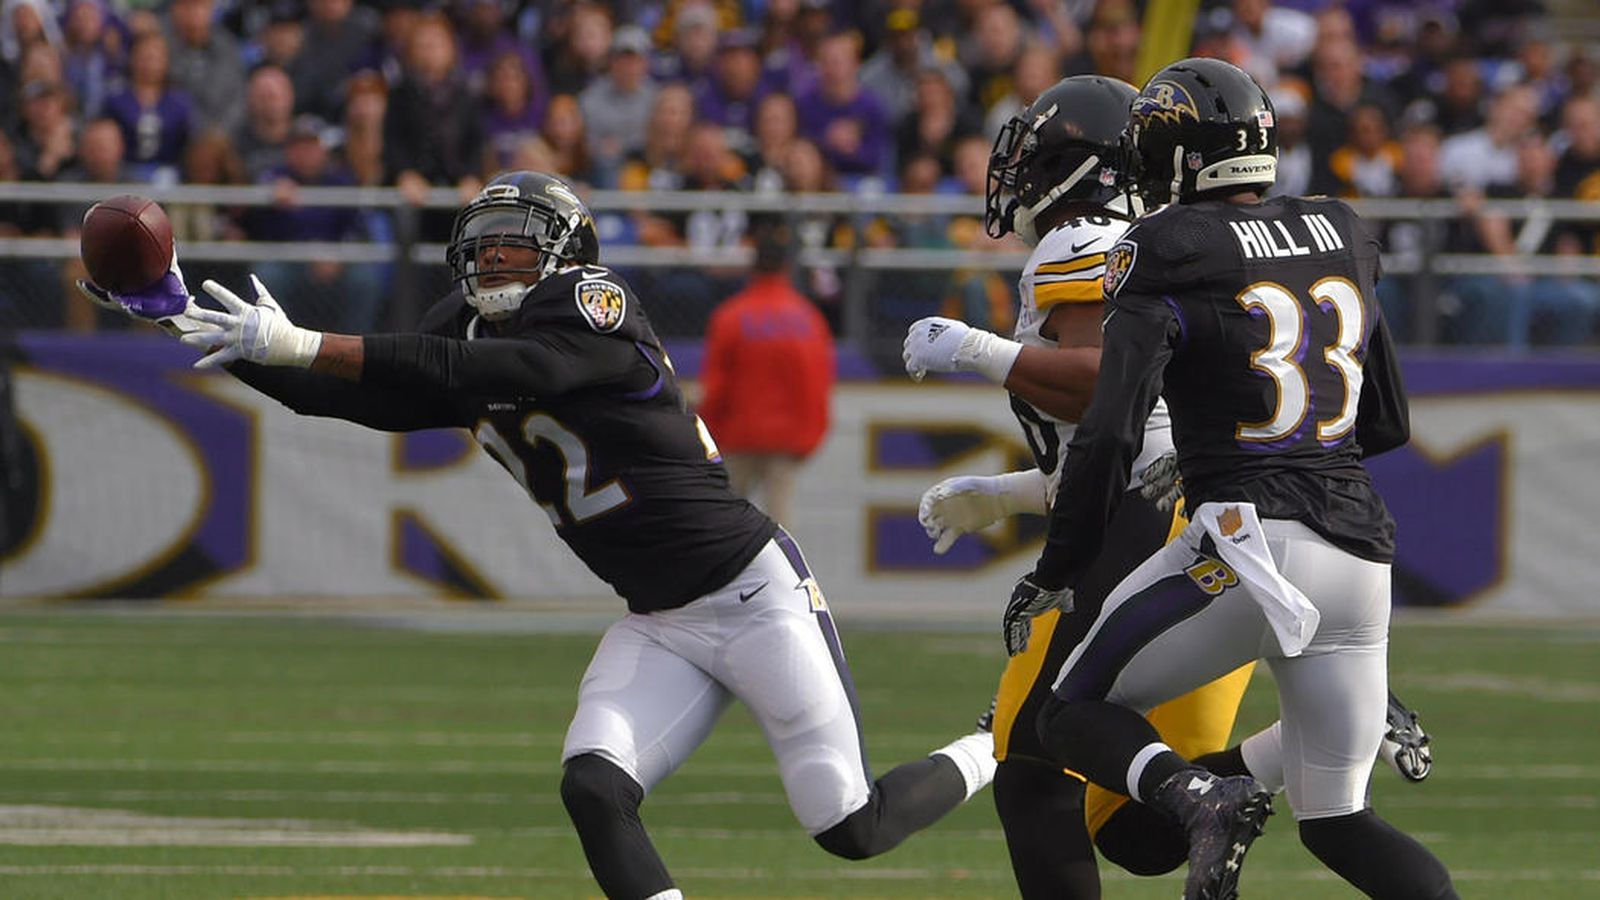 Bal-ravens-vs-steelers-20151227-032.0.0